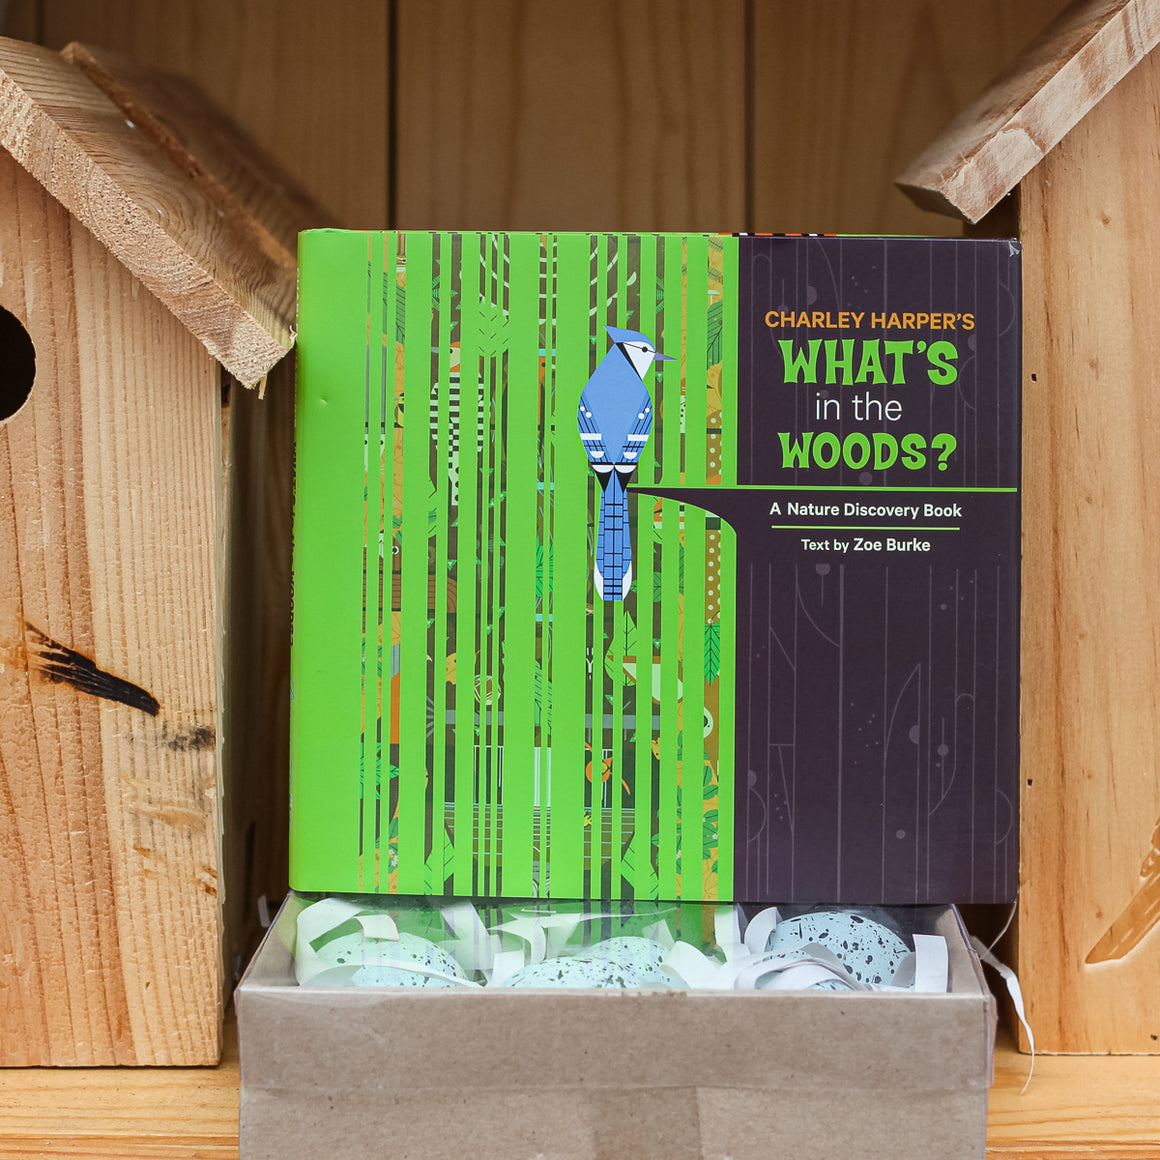 Charley Harper's What's in the Woods? Nature Discovery Book